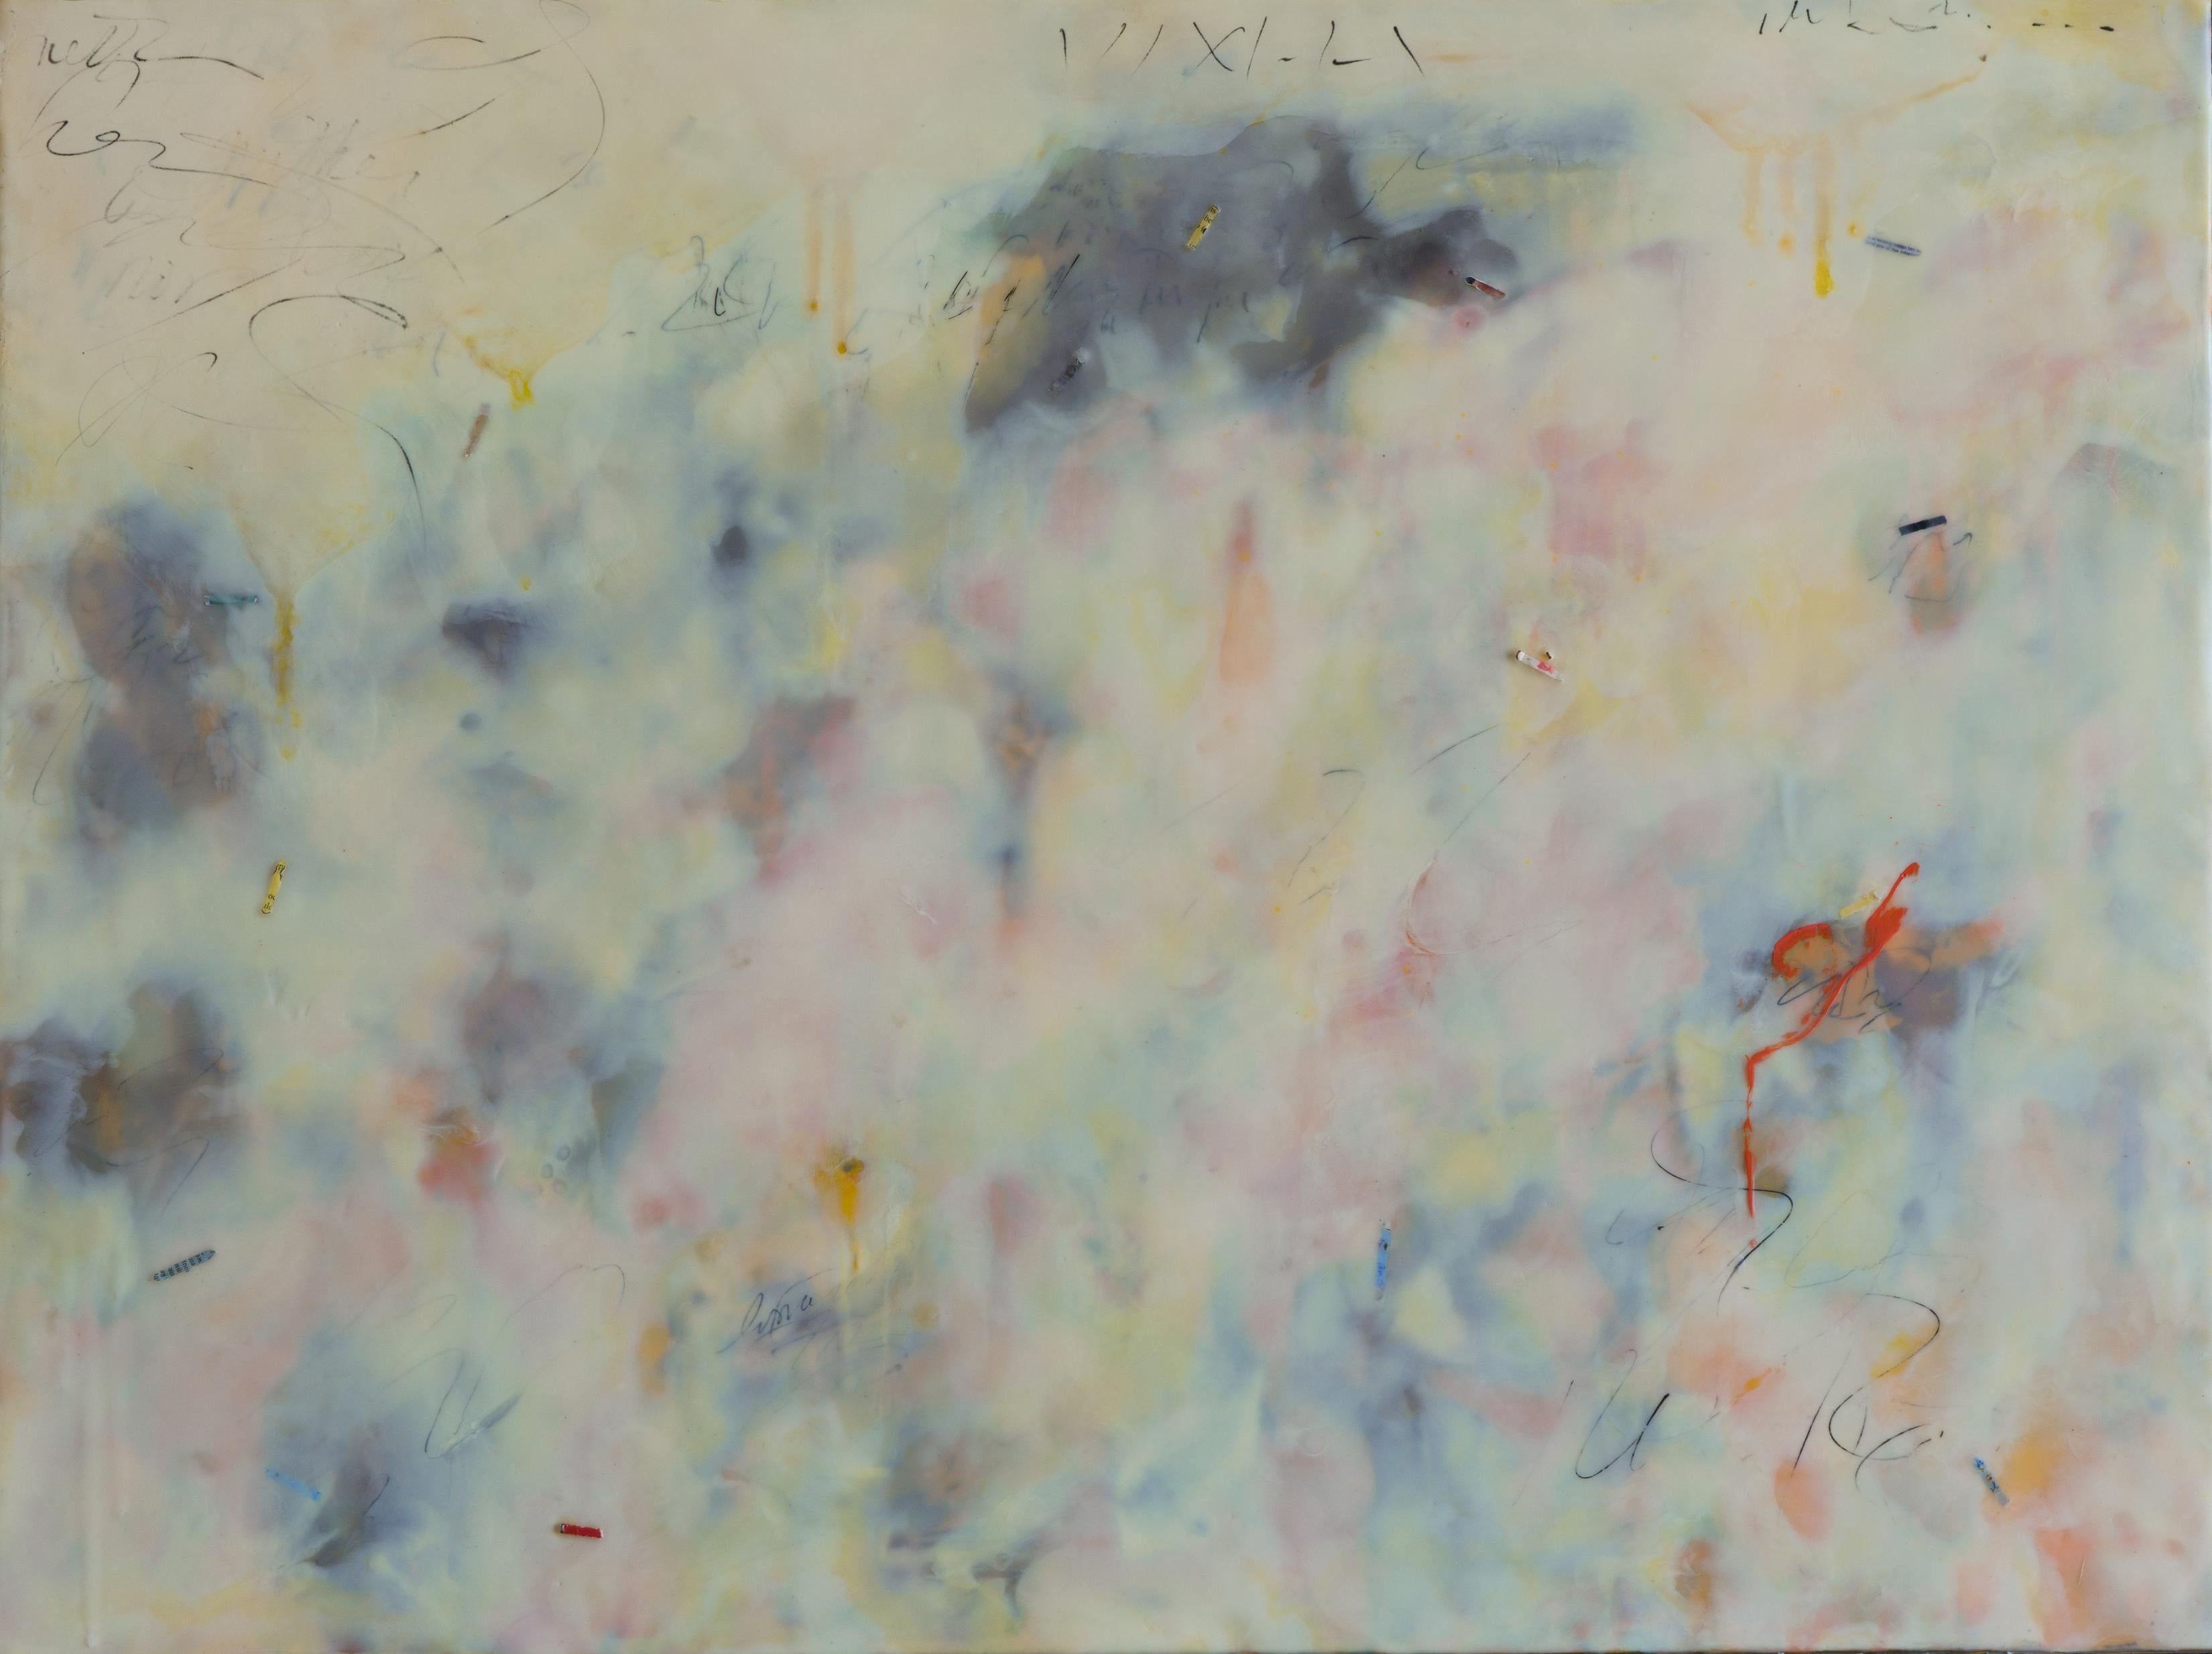 """""""Threshold"""" by Pamela Gibson, Encaustic and pigment on board, 2020"""